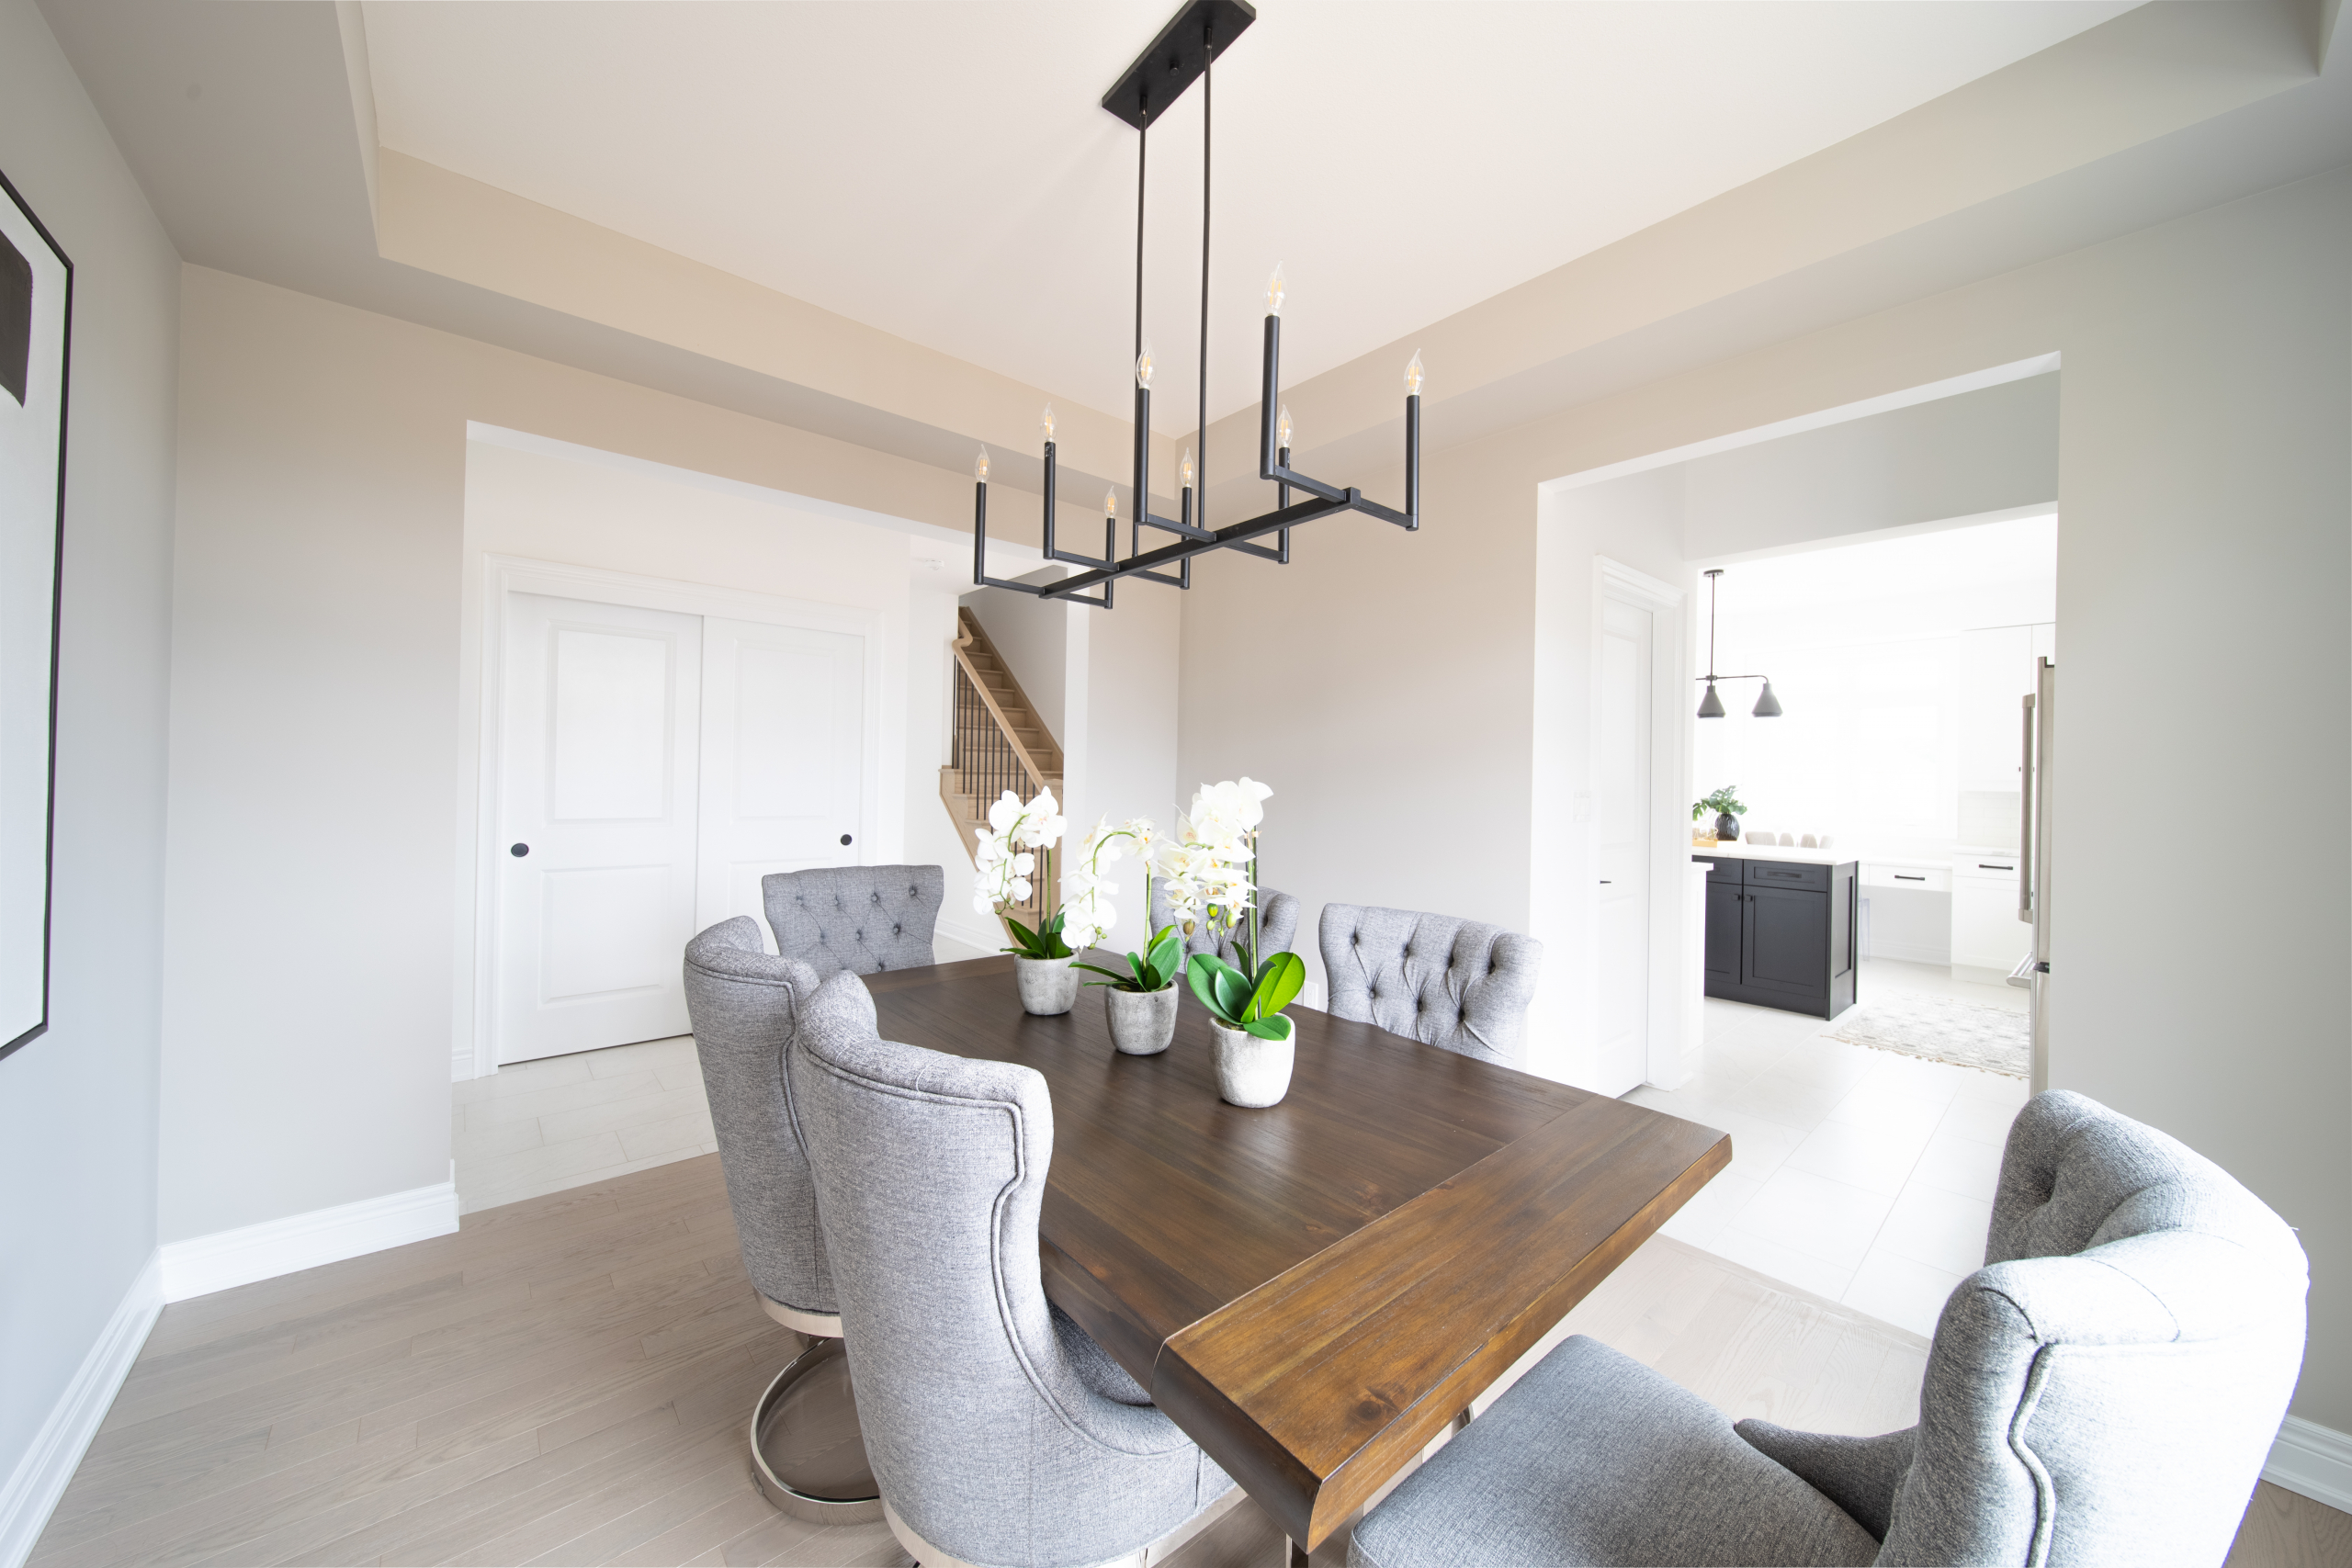 Mountainview Homes - Inspiration Gallery 22